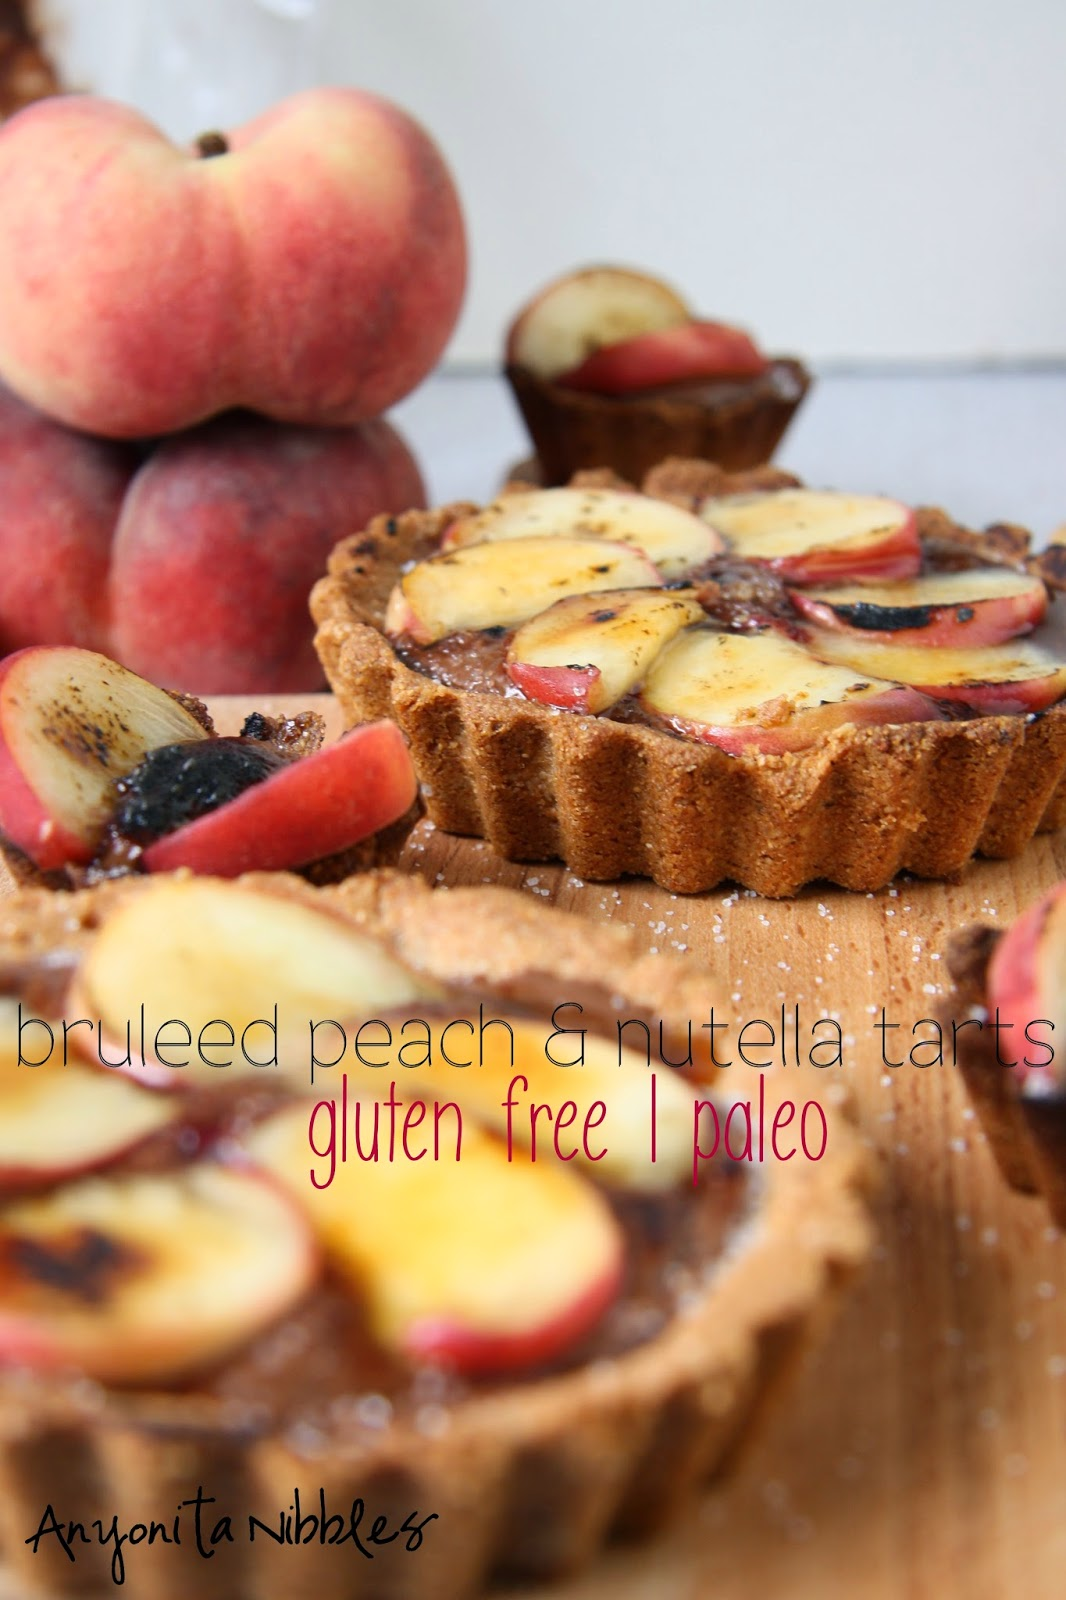 #Paleo and #glutenfree Brûléed Peach & Nutella Tarts from Anyonita Nibbles